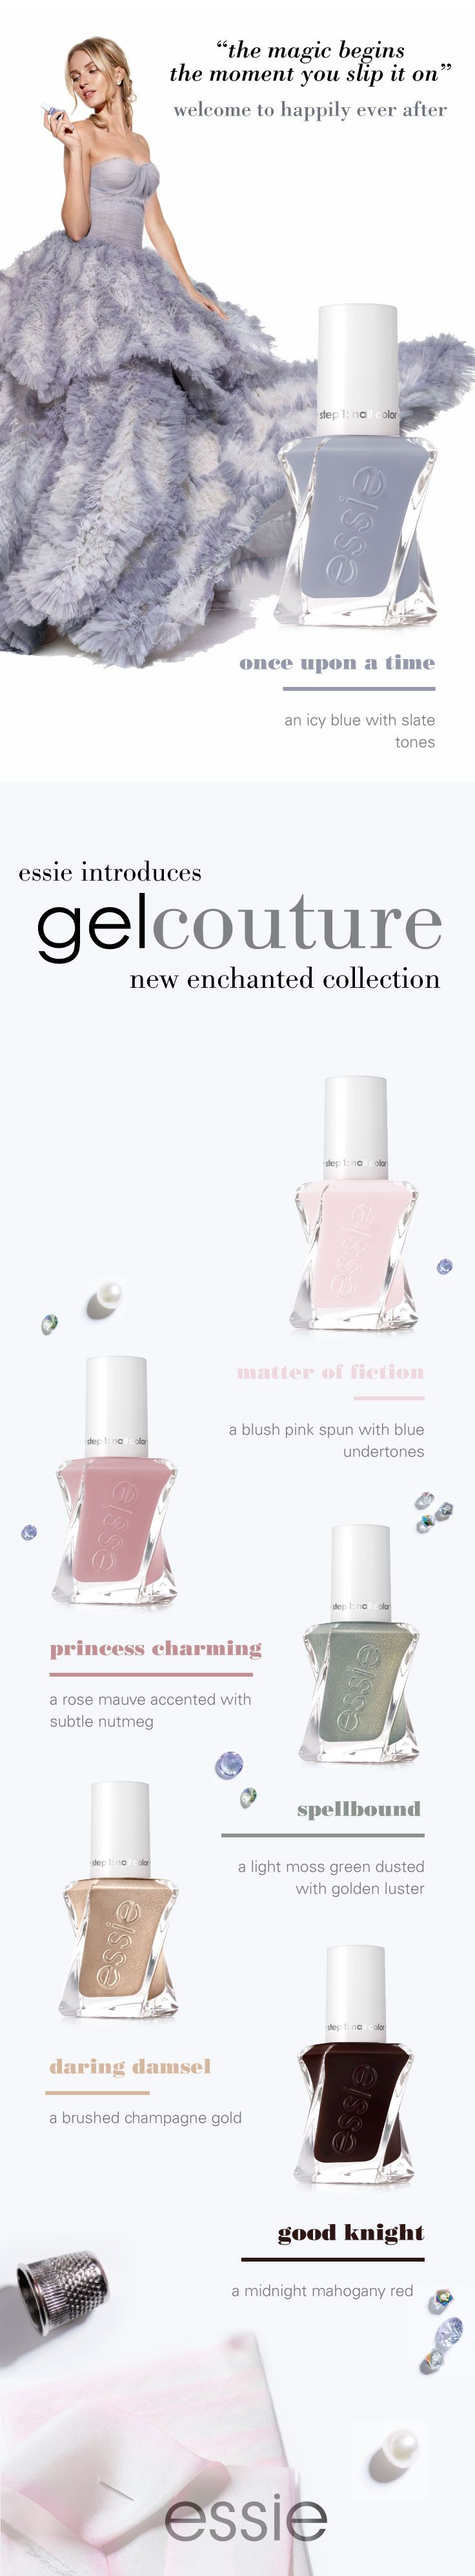 113 best gel couture images on pinterest dupes wedding nail and happily ever after comes to life like never before with the essie gel couture enchanted collection parisarafo Images